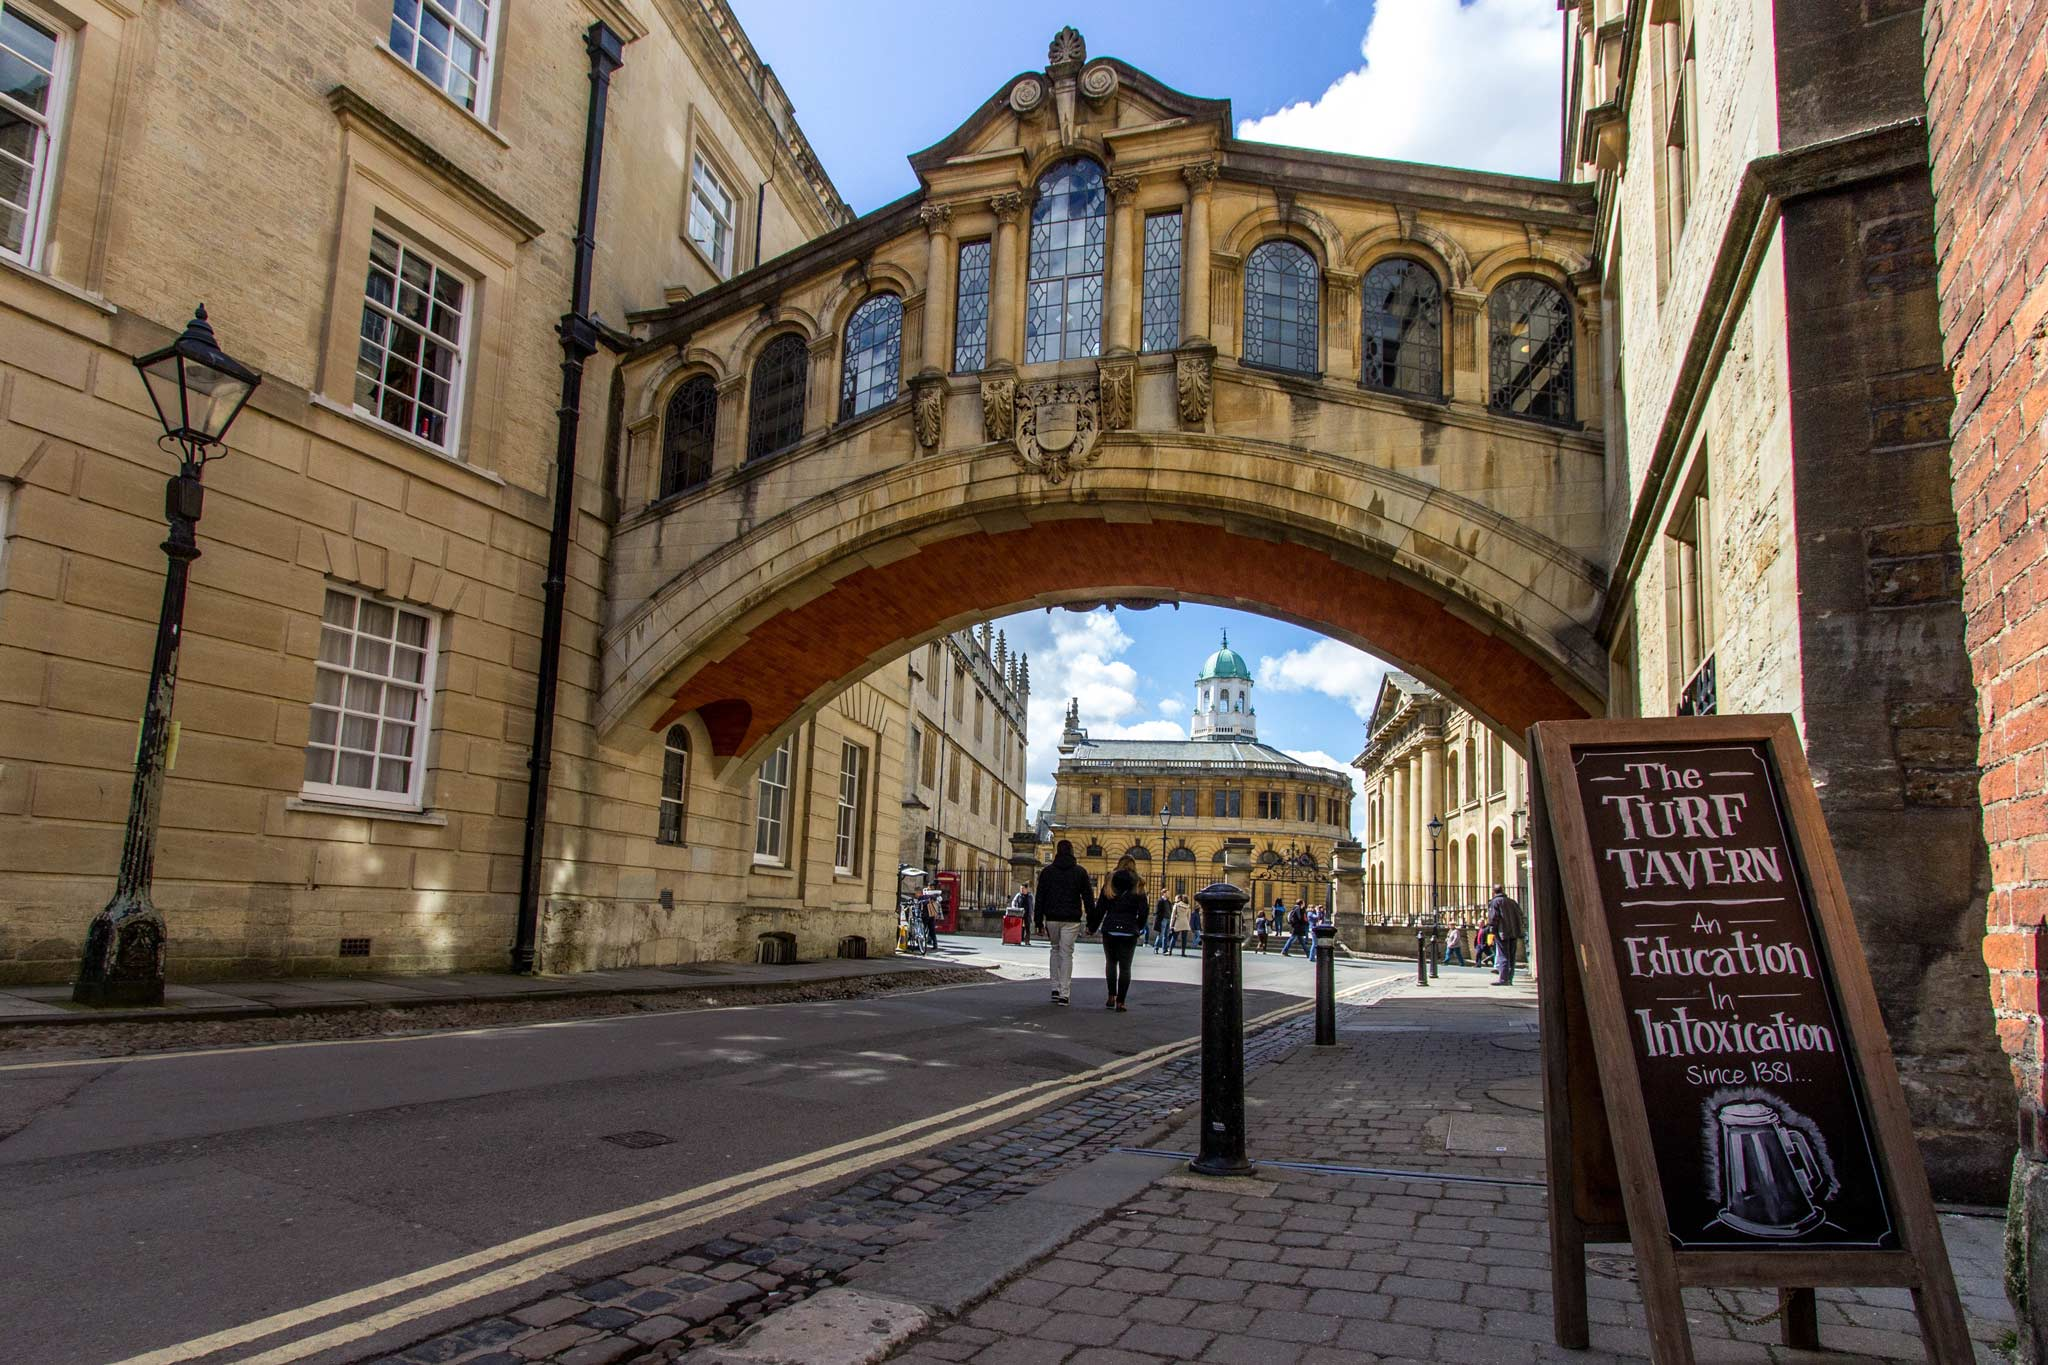 bridge essay oxford Definition of bridge - a structure carrying a road, path, railway, etc across a river, road, or other obstacle, the elevated, enclosed platform on a shi.